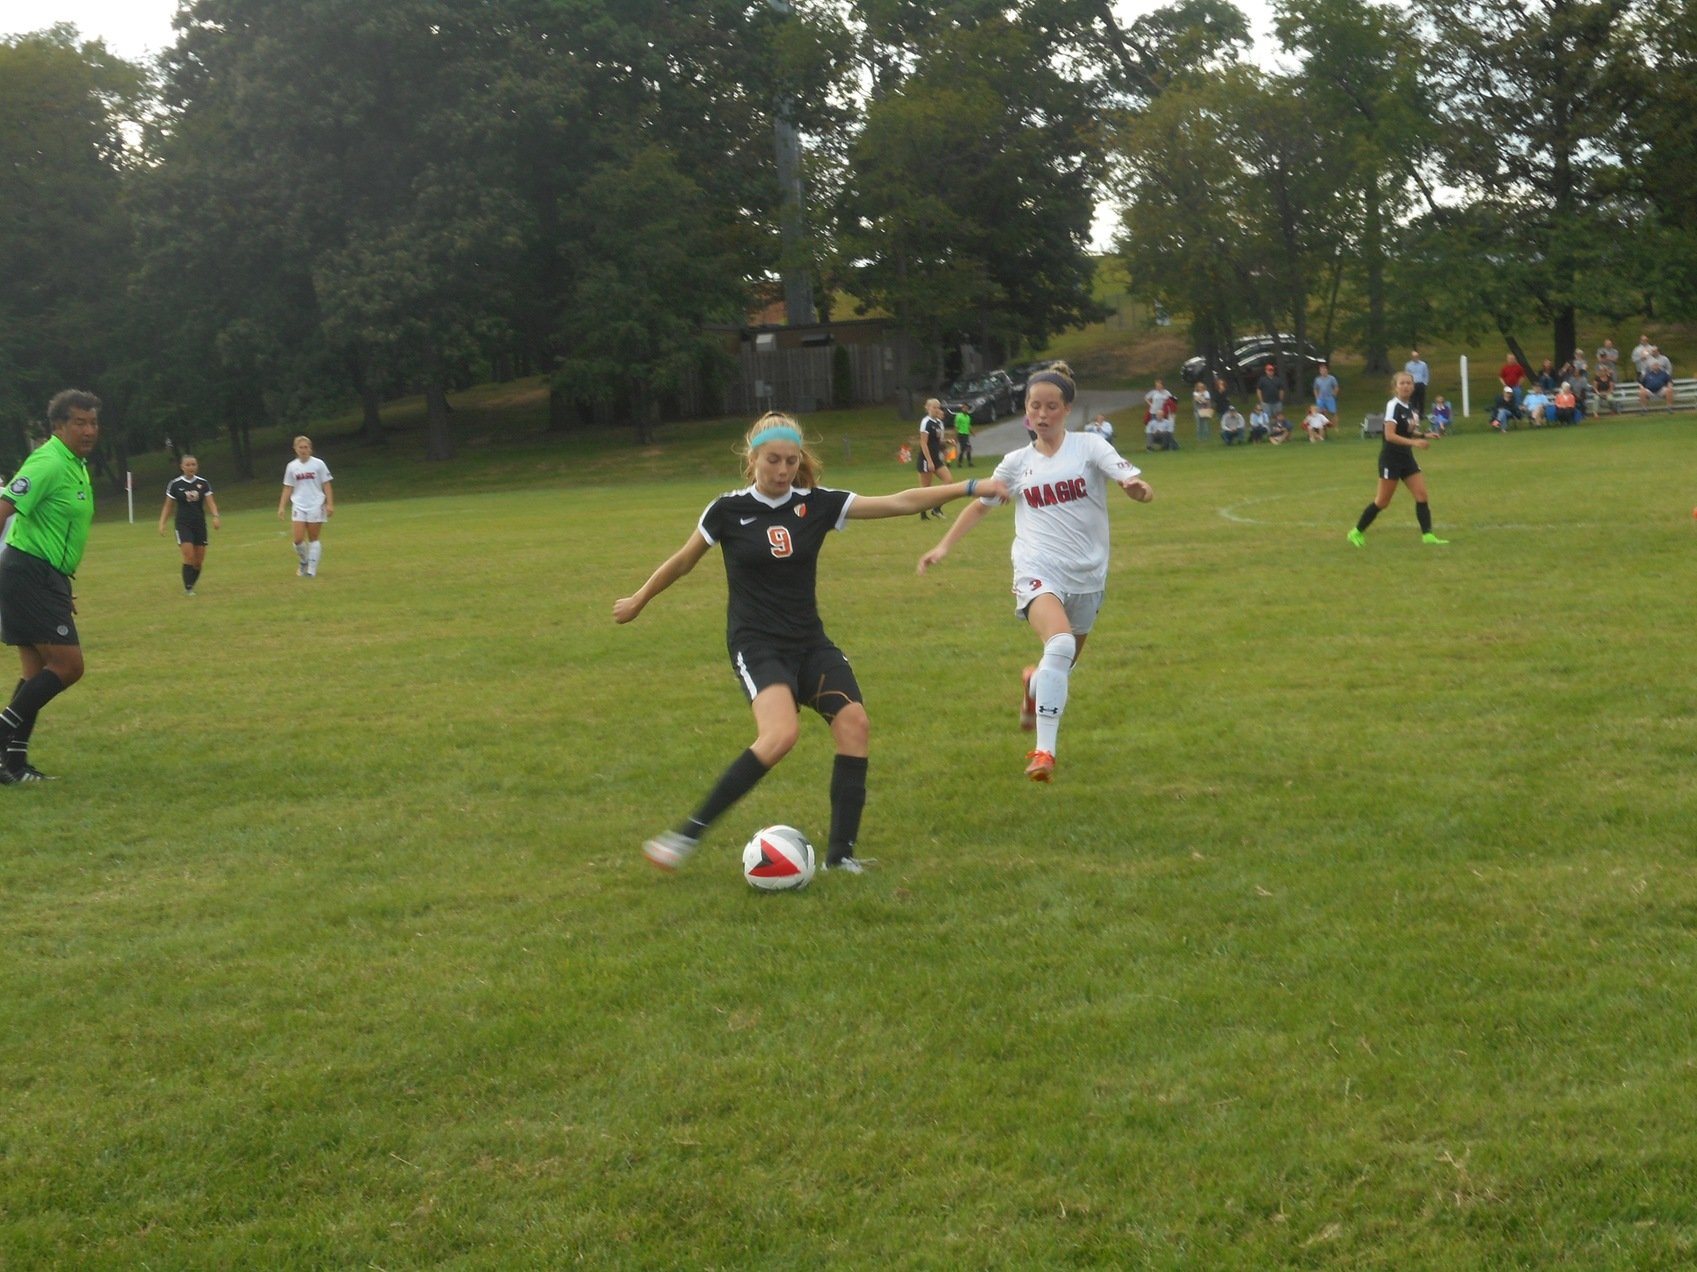 A Conference soccer opener goes to McDonogh over Mercy